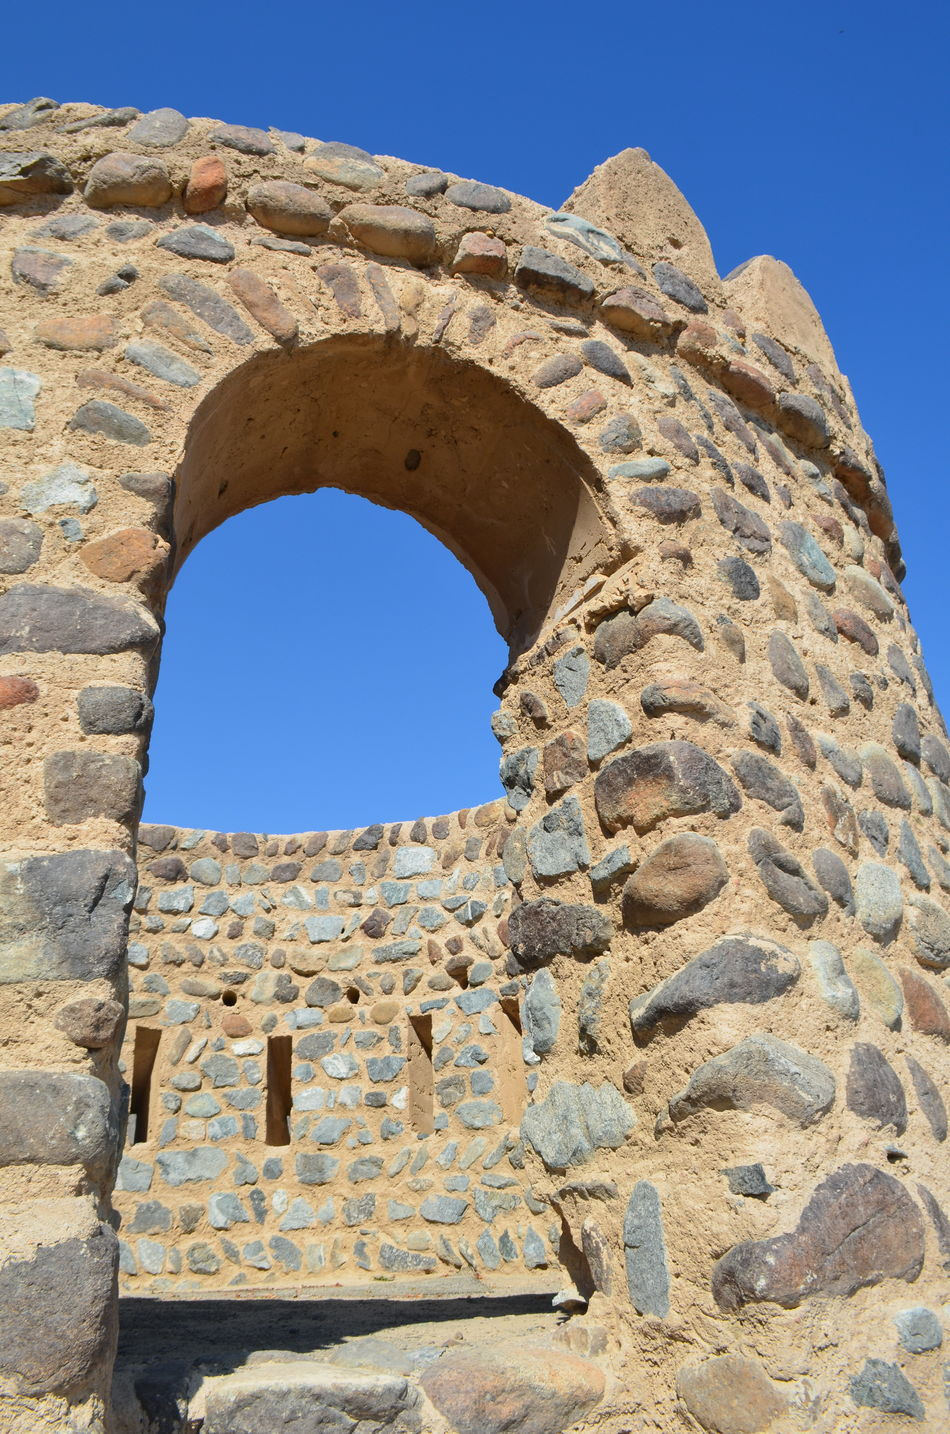 Ancient Ancient Civilization Ancient History Architecture Arid Climate Blue Sky Clear Sky Day Fort Fujairah History Low Angle View Man Made Object No People Old Ruin Outdoors Sky Stone Stone - Object Travel Destinations UAE United Arab Emirates